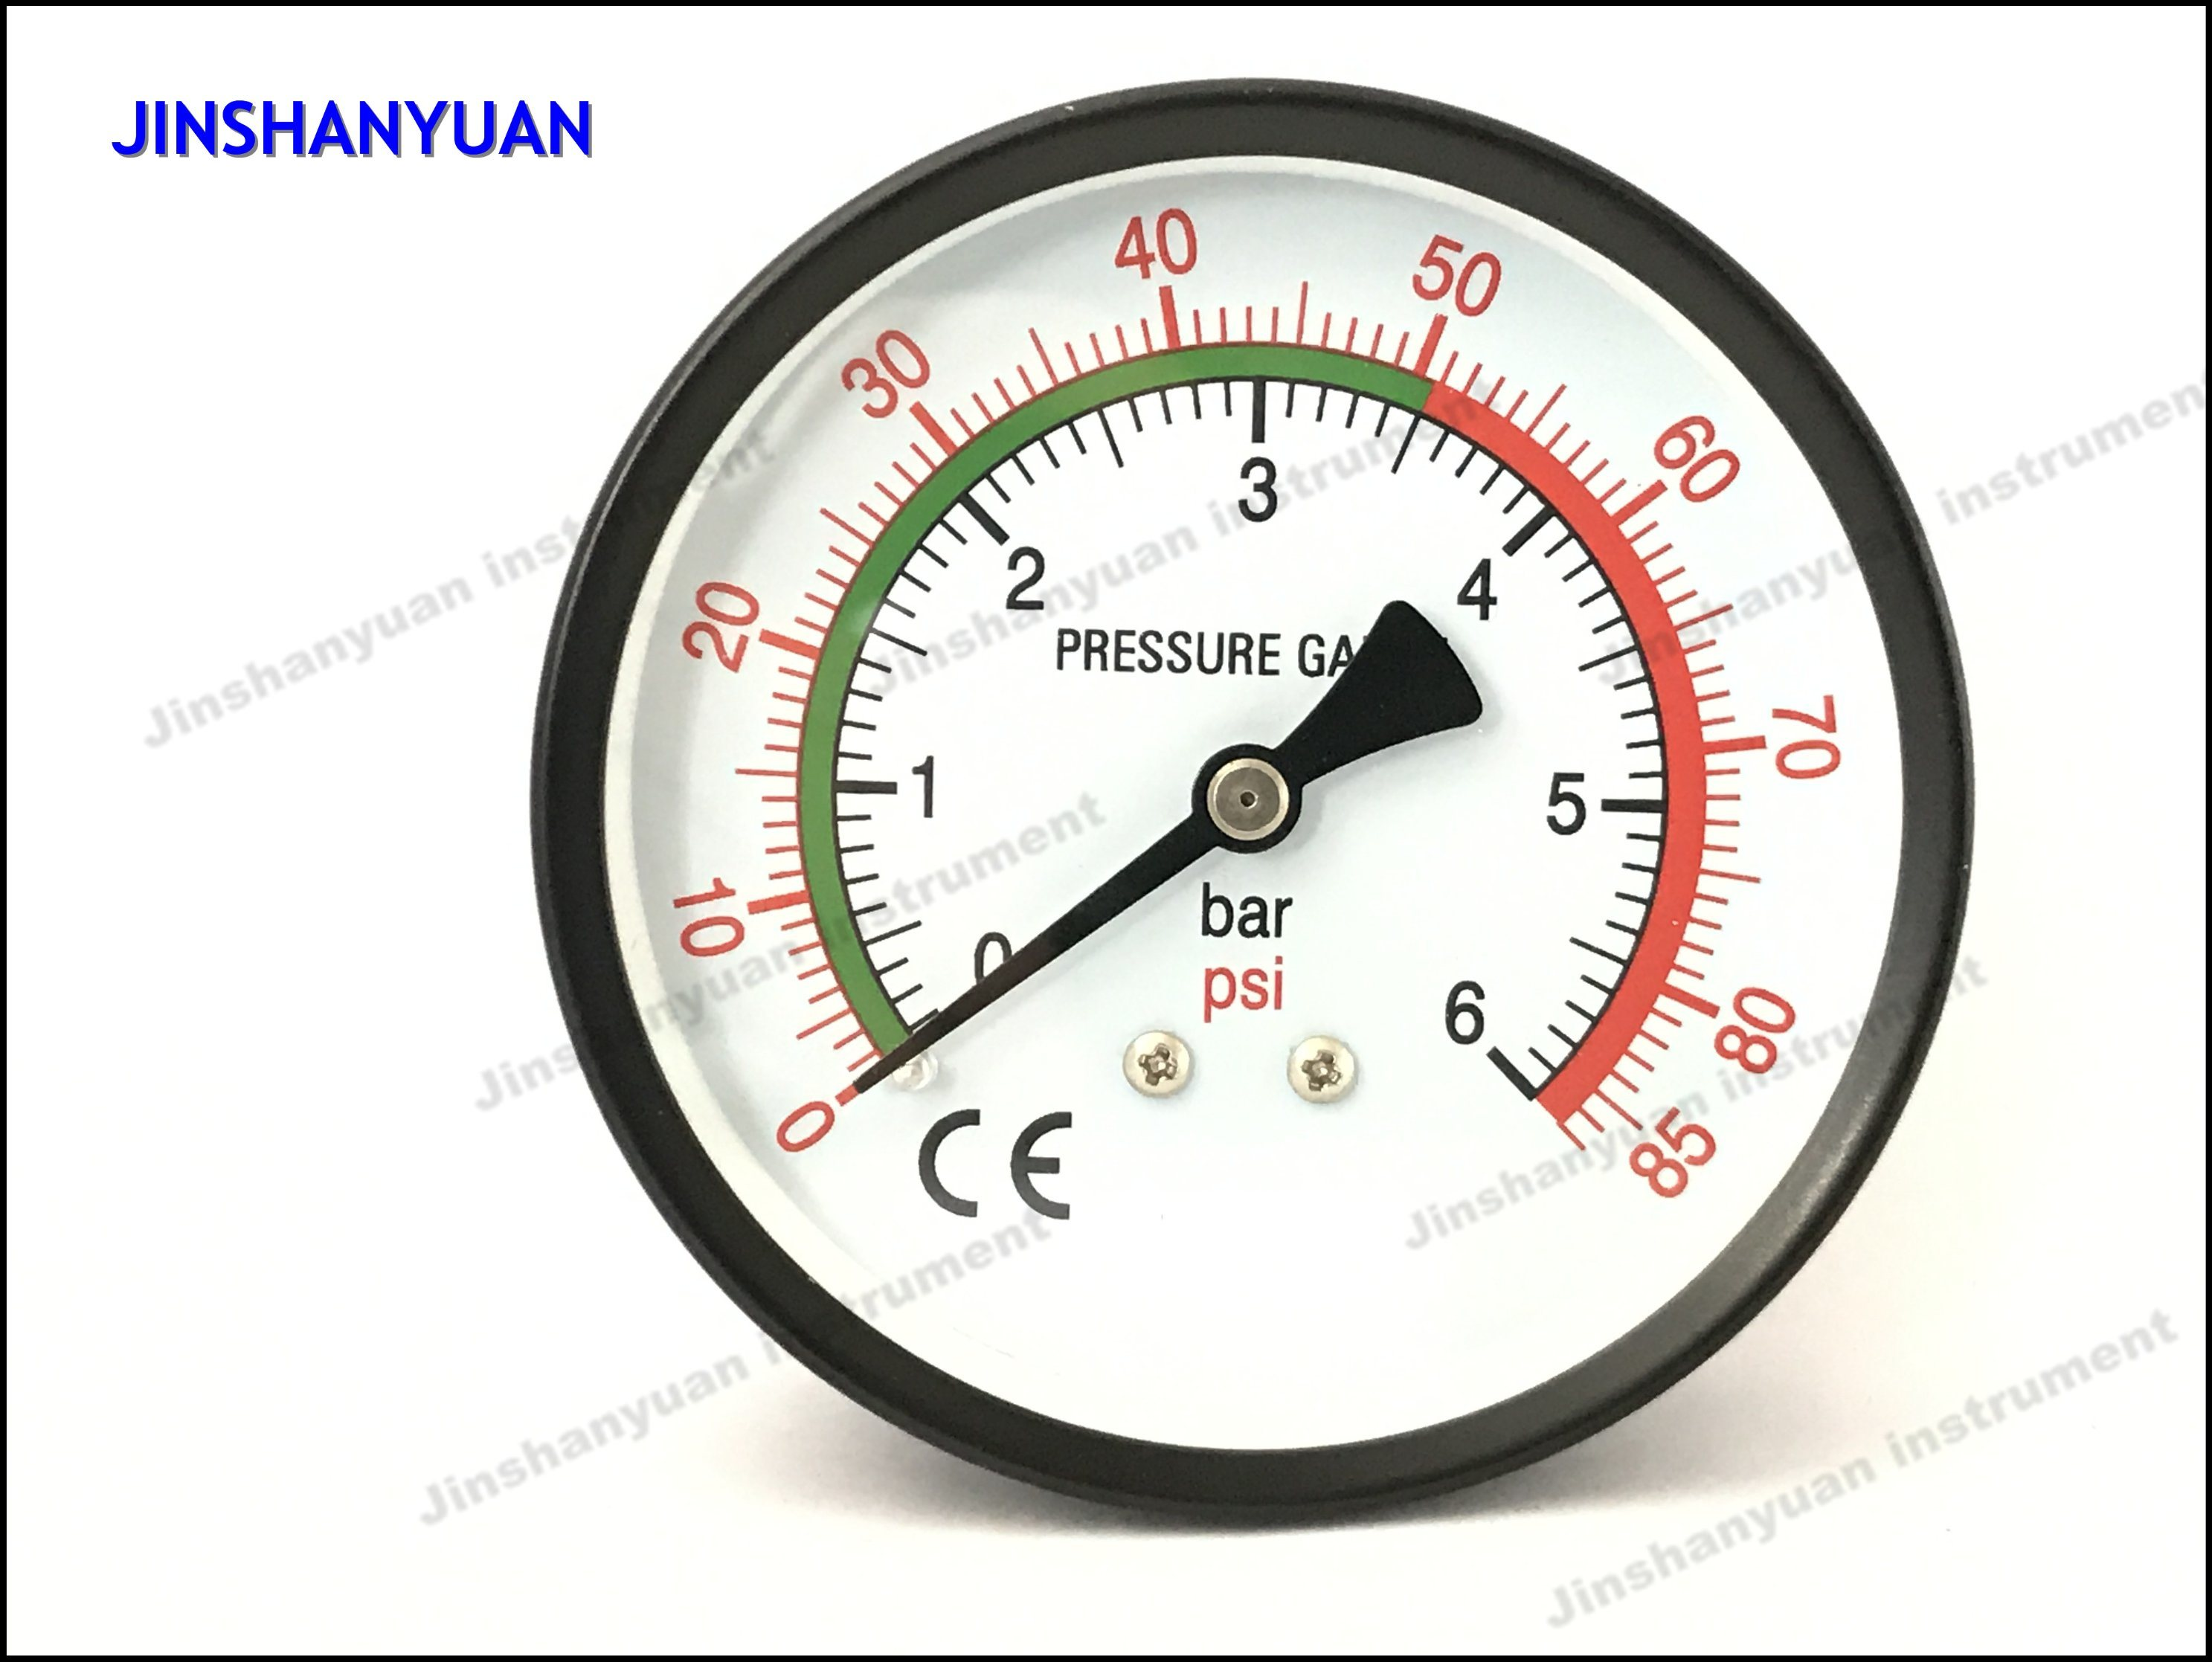 Gpg-016 Axial Mounted Dry Pressure Gauge/Bourdon Tube Manometer